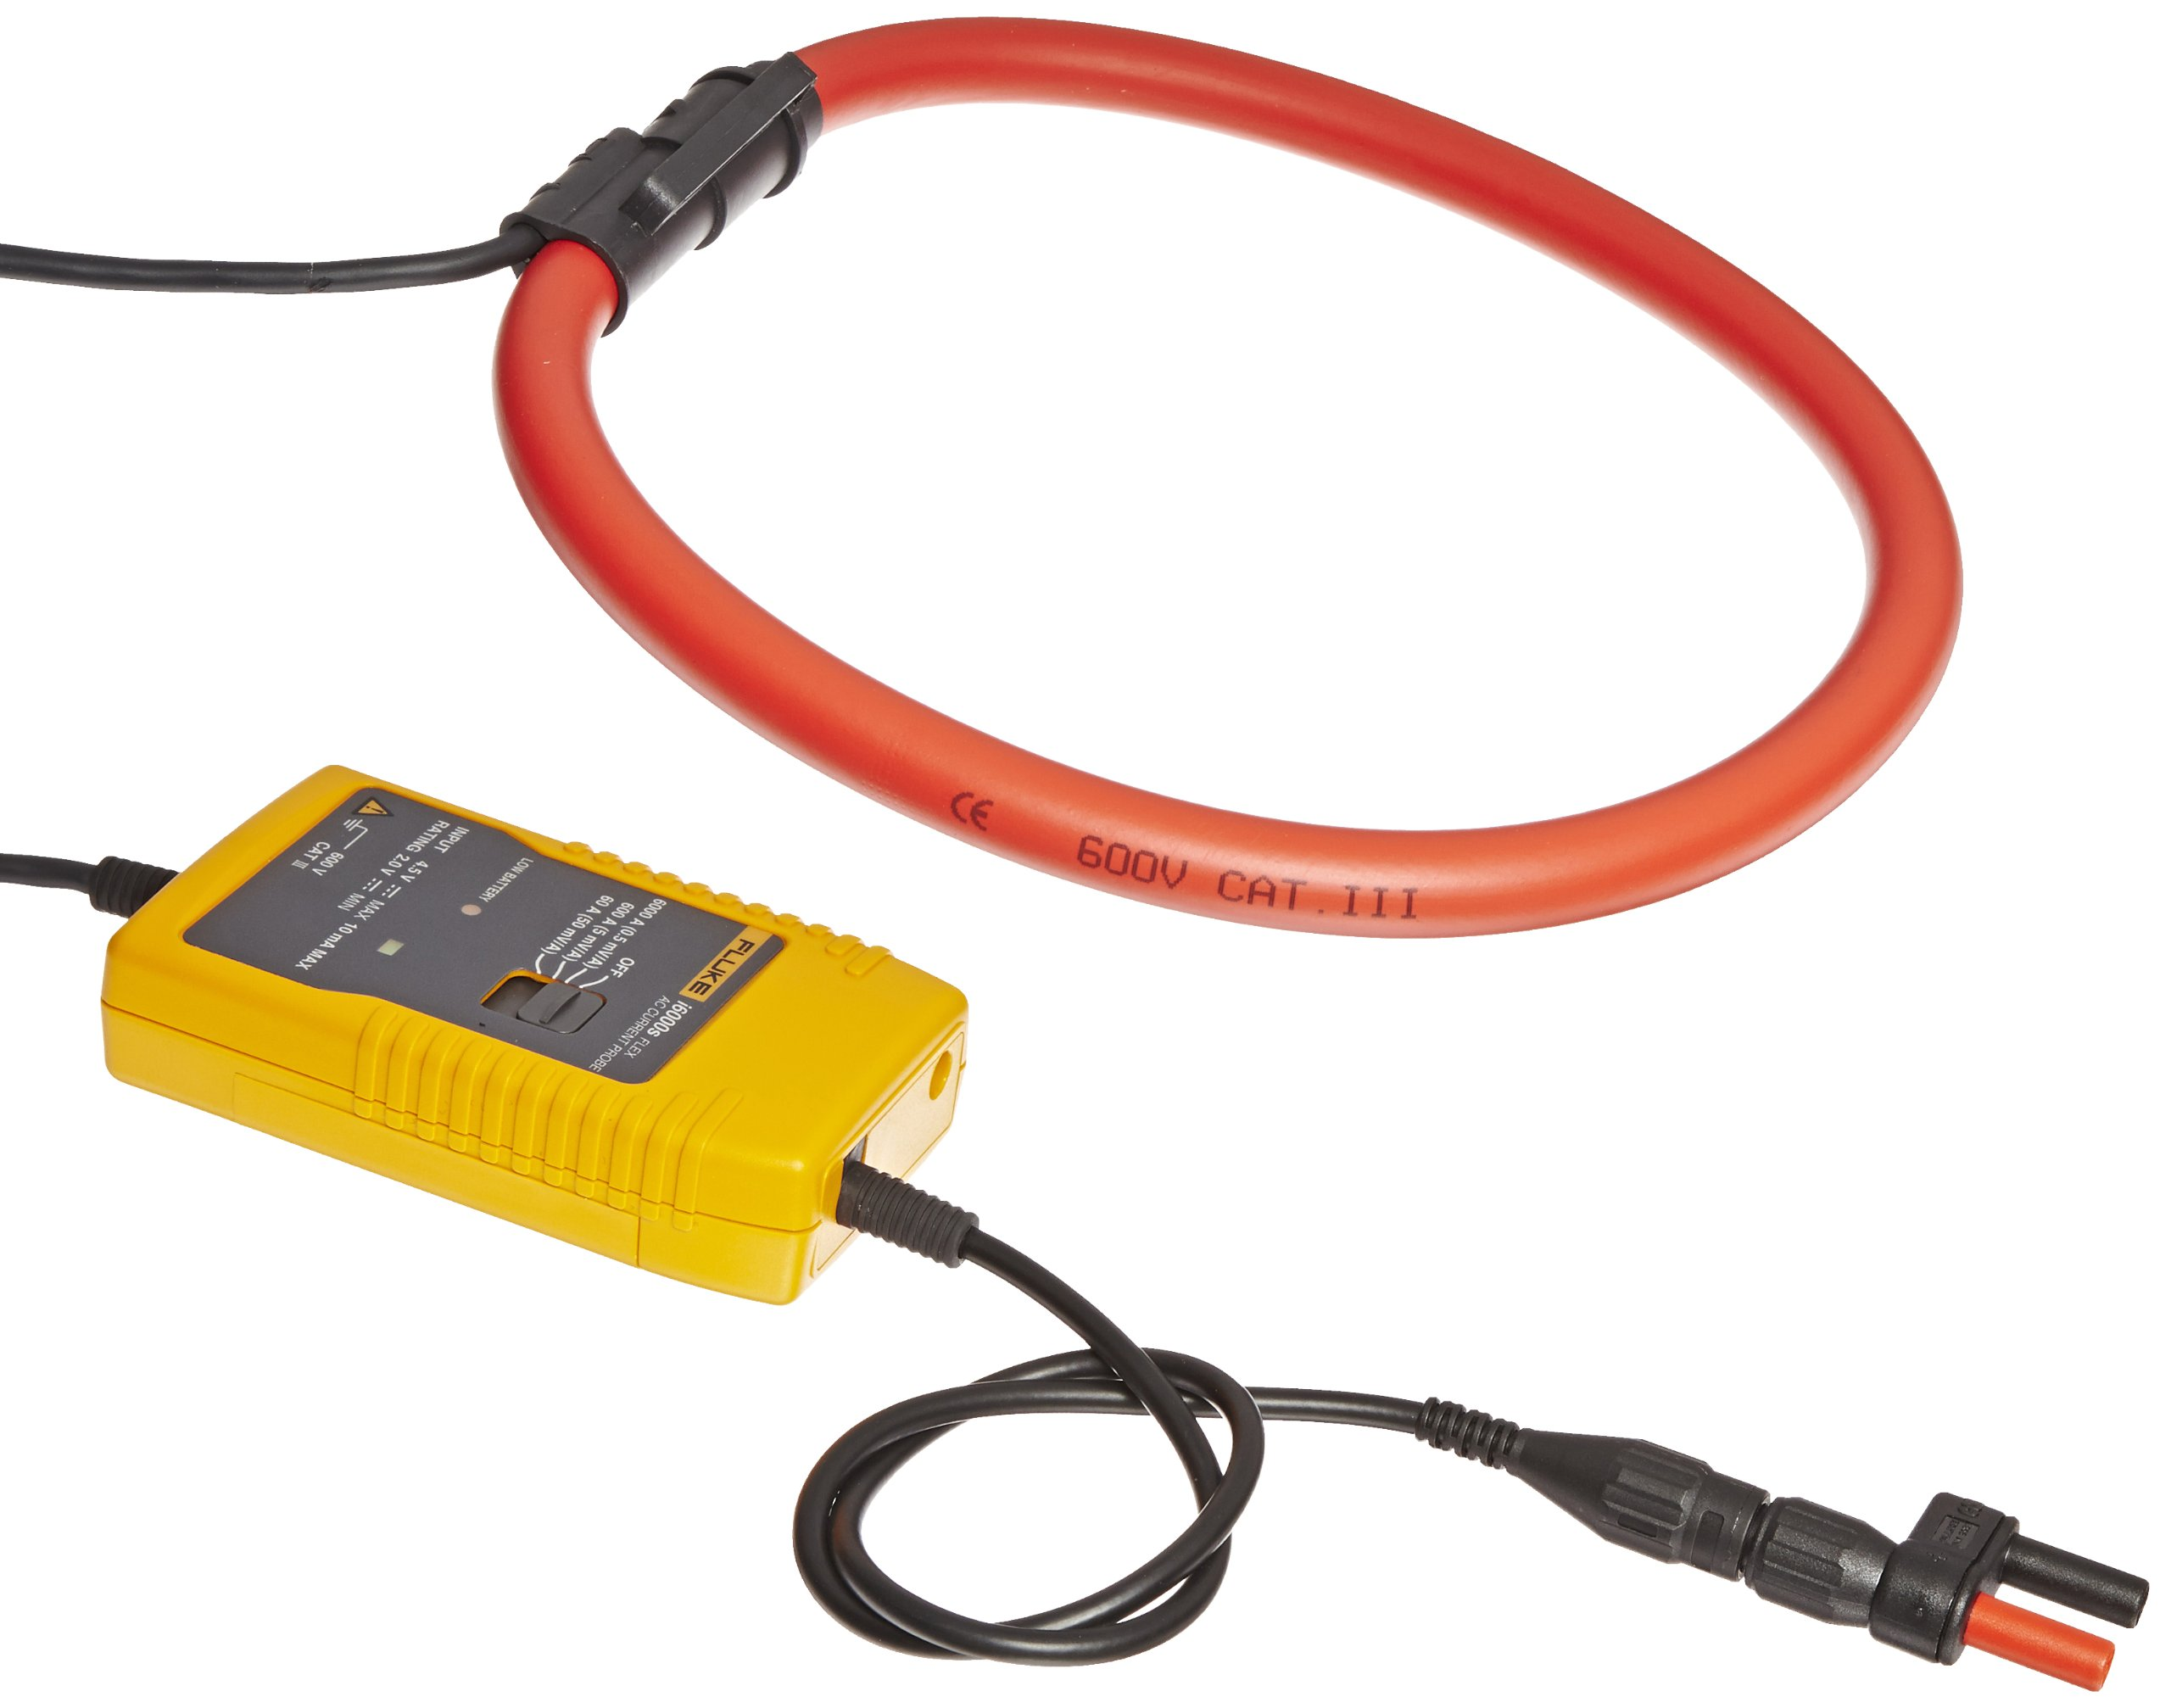 Fluke I6000S FLEX-24 AC Current Probe, 600V AC rms/DC Voltage, 6000A AC Current, 610mm Head Cable